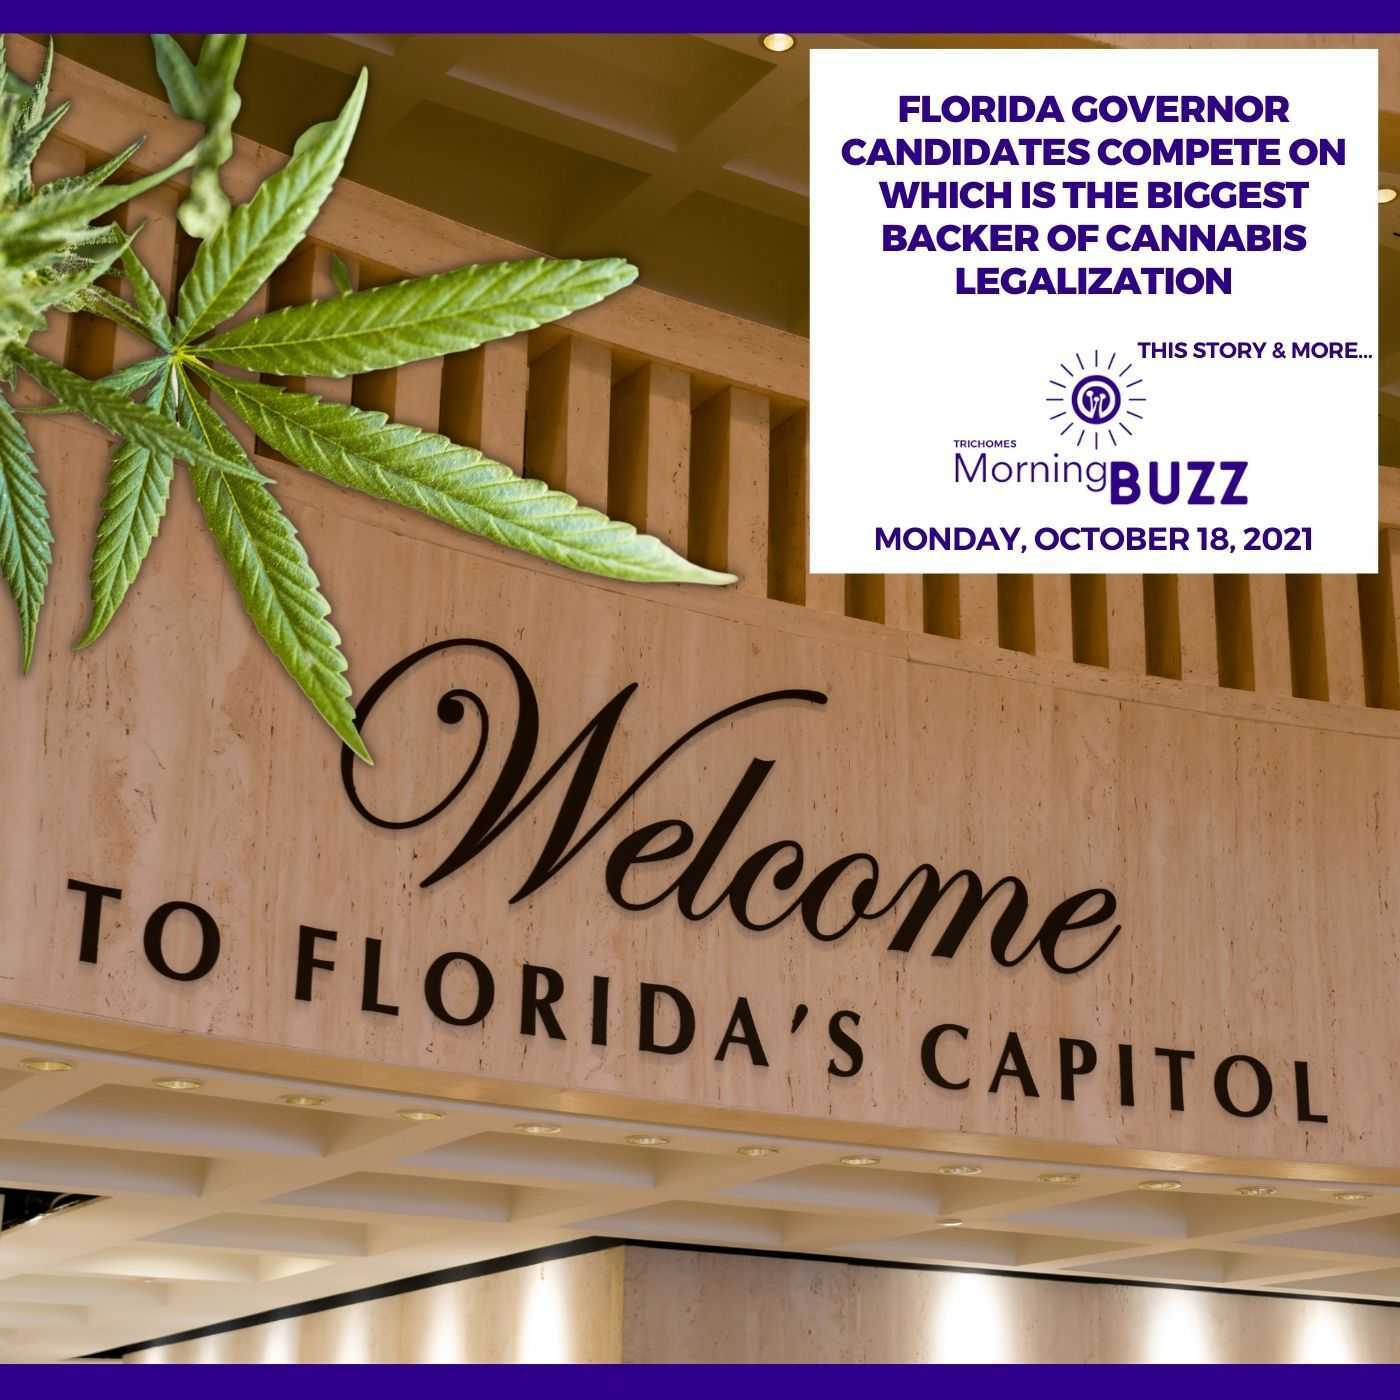 Florida Governor Candidates Compete On Which Is The Biggest Backer Of Cannabis Legalization show art